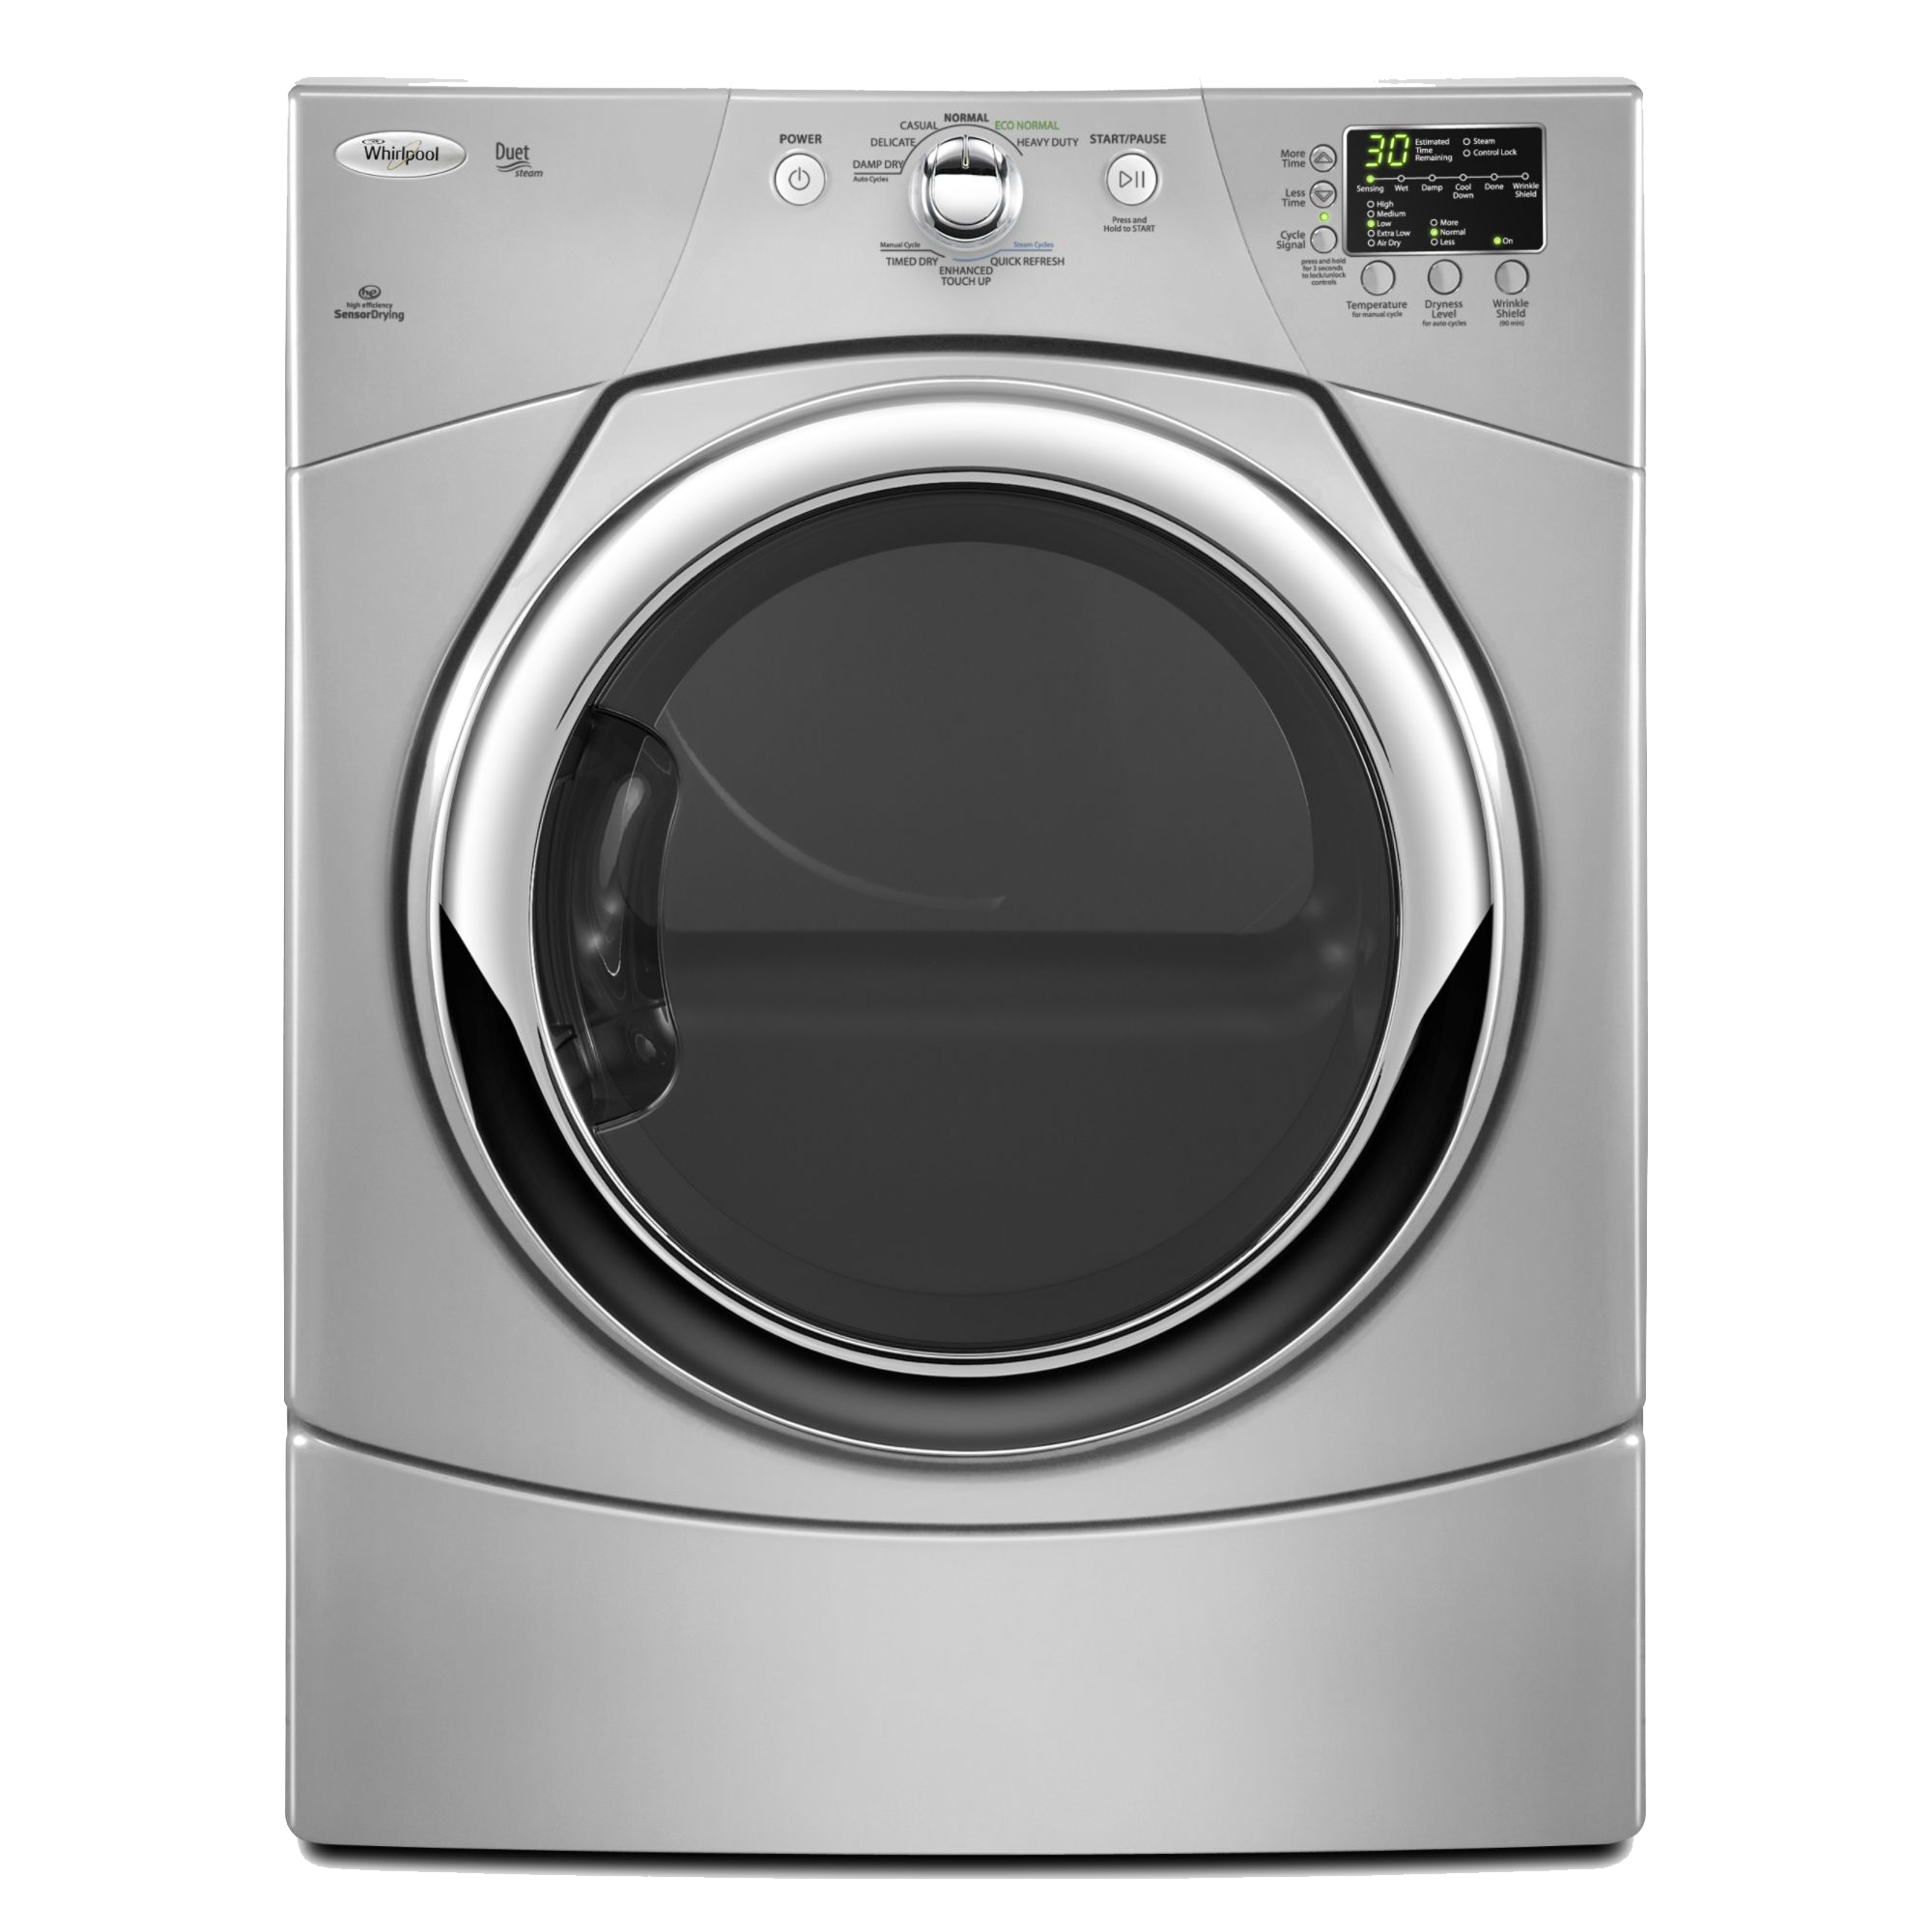 fisher paykel dryer repair microsoft visio buy cell phone. Black Bedroom Furniture Sets. Home Design Ideas